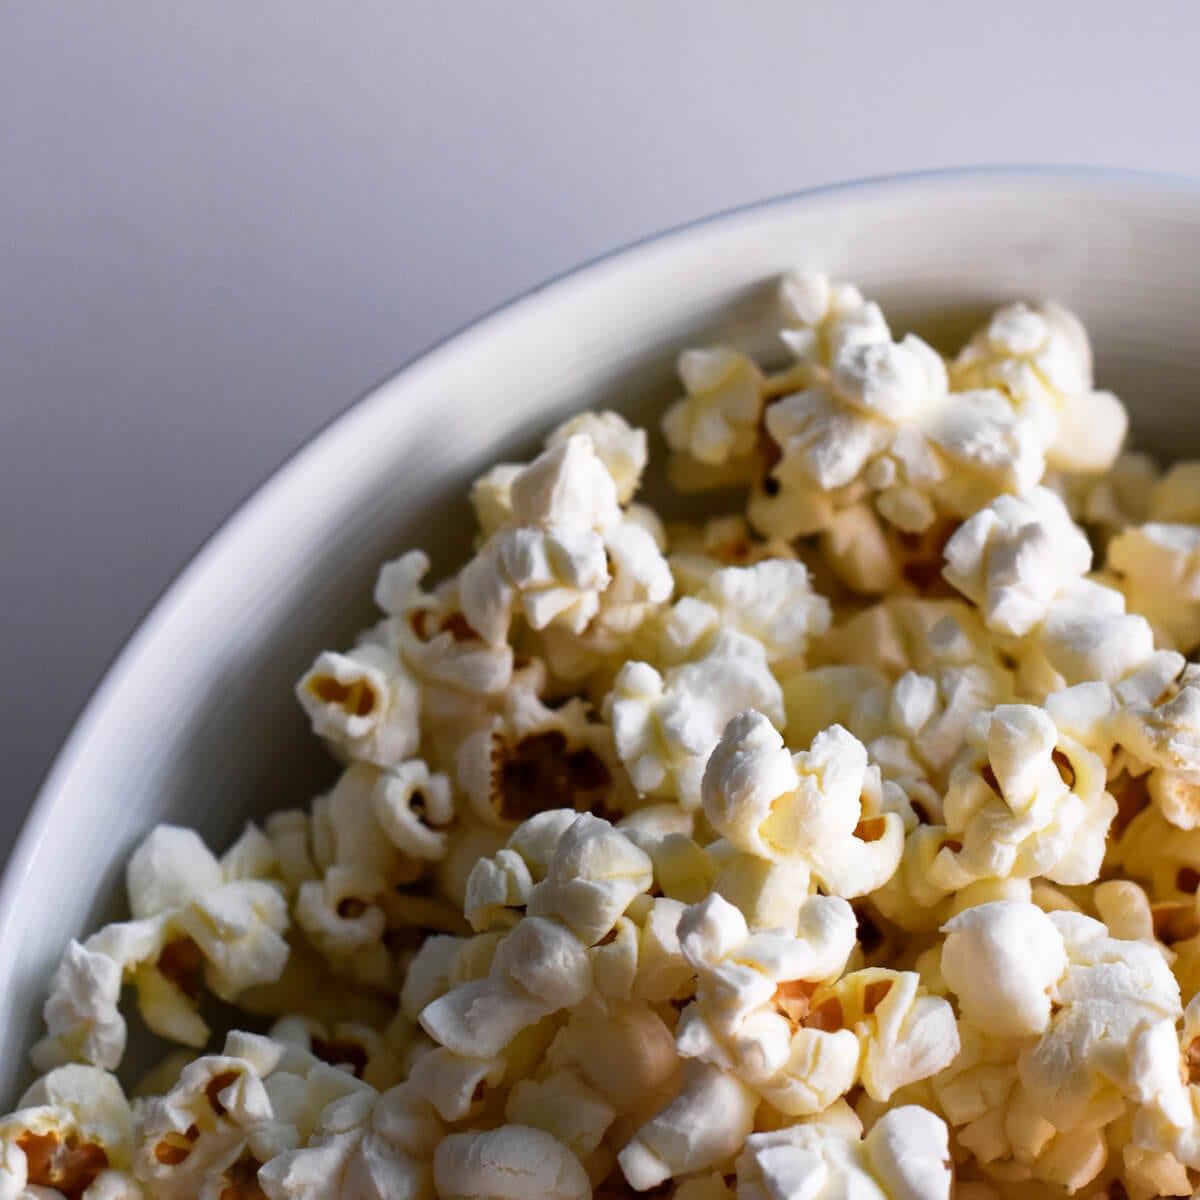 How to Make Air-Popped Popcorn: An Easy and Healthy Recipe